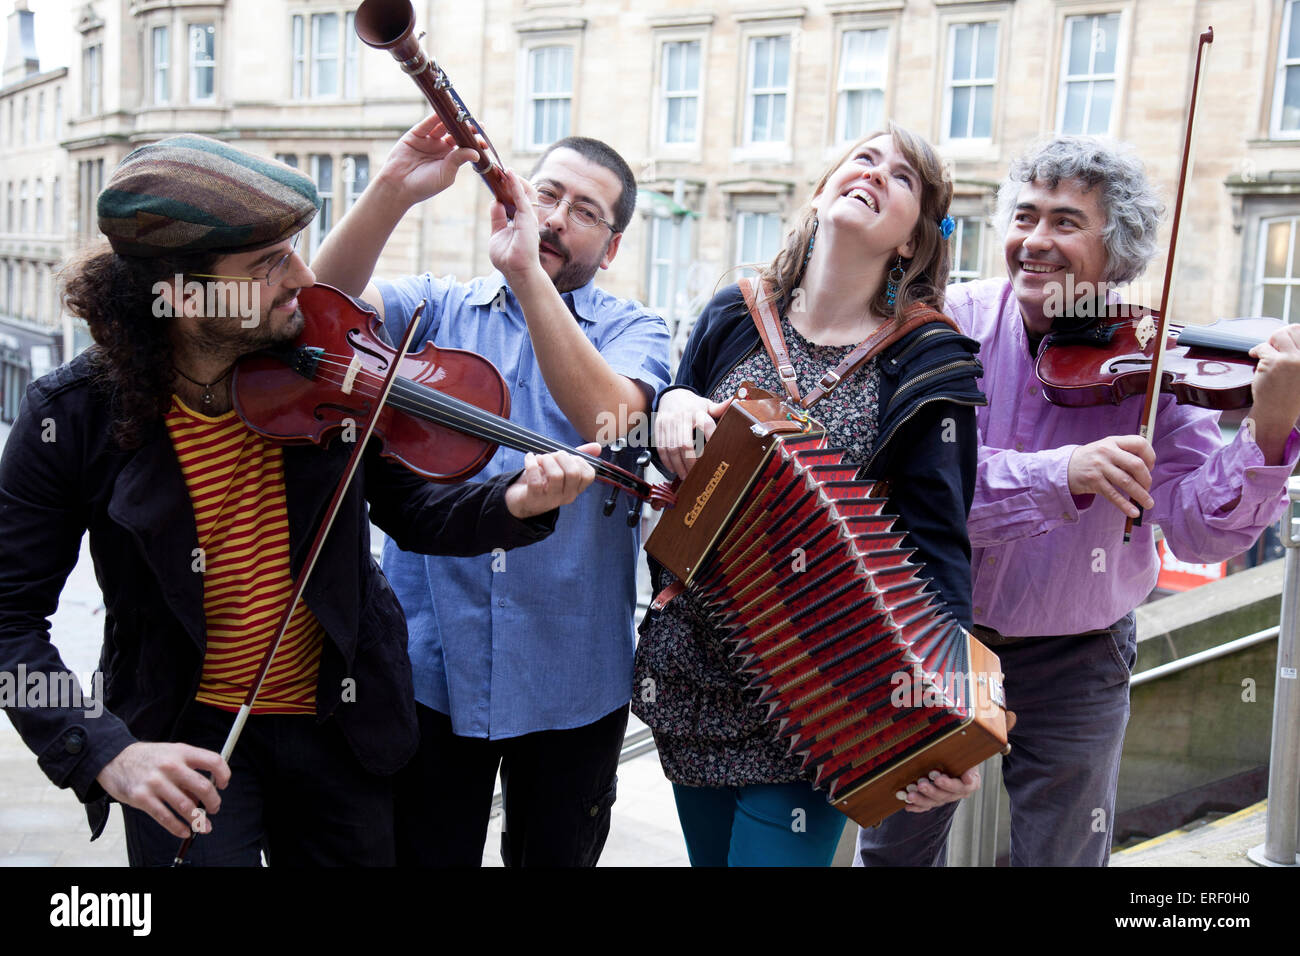 Sol i Serena - Spanish folk band. Photographed at  Celtic Connections 2012 press launch in Glasgow, 25 October 2011. - Stock Image